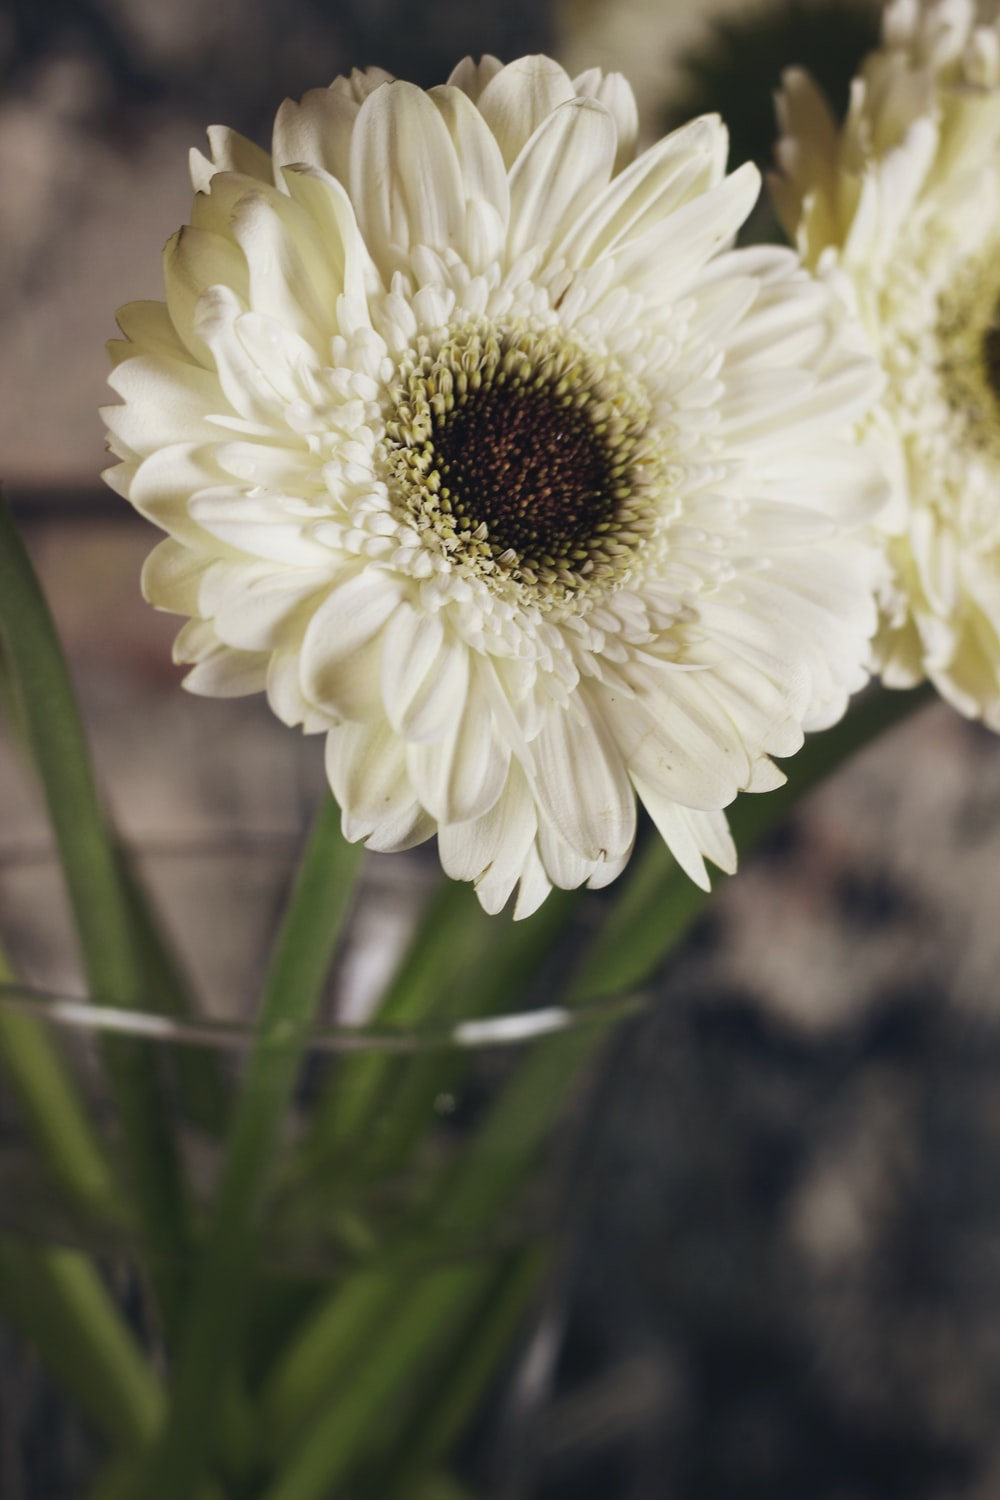 white petaled flower close-up photography